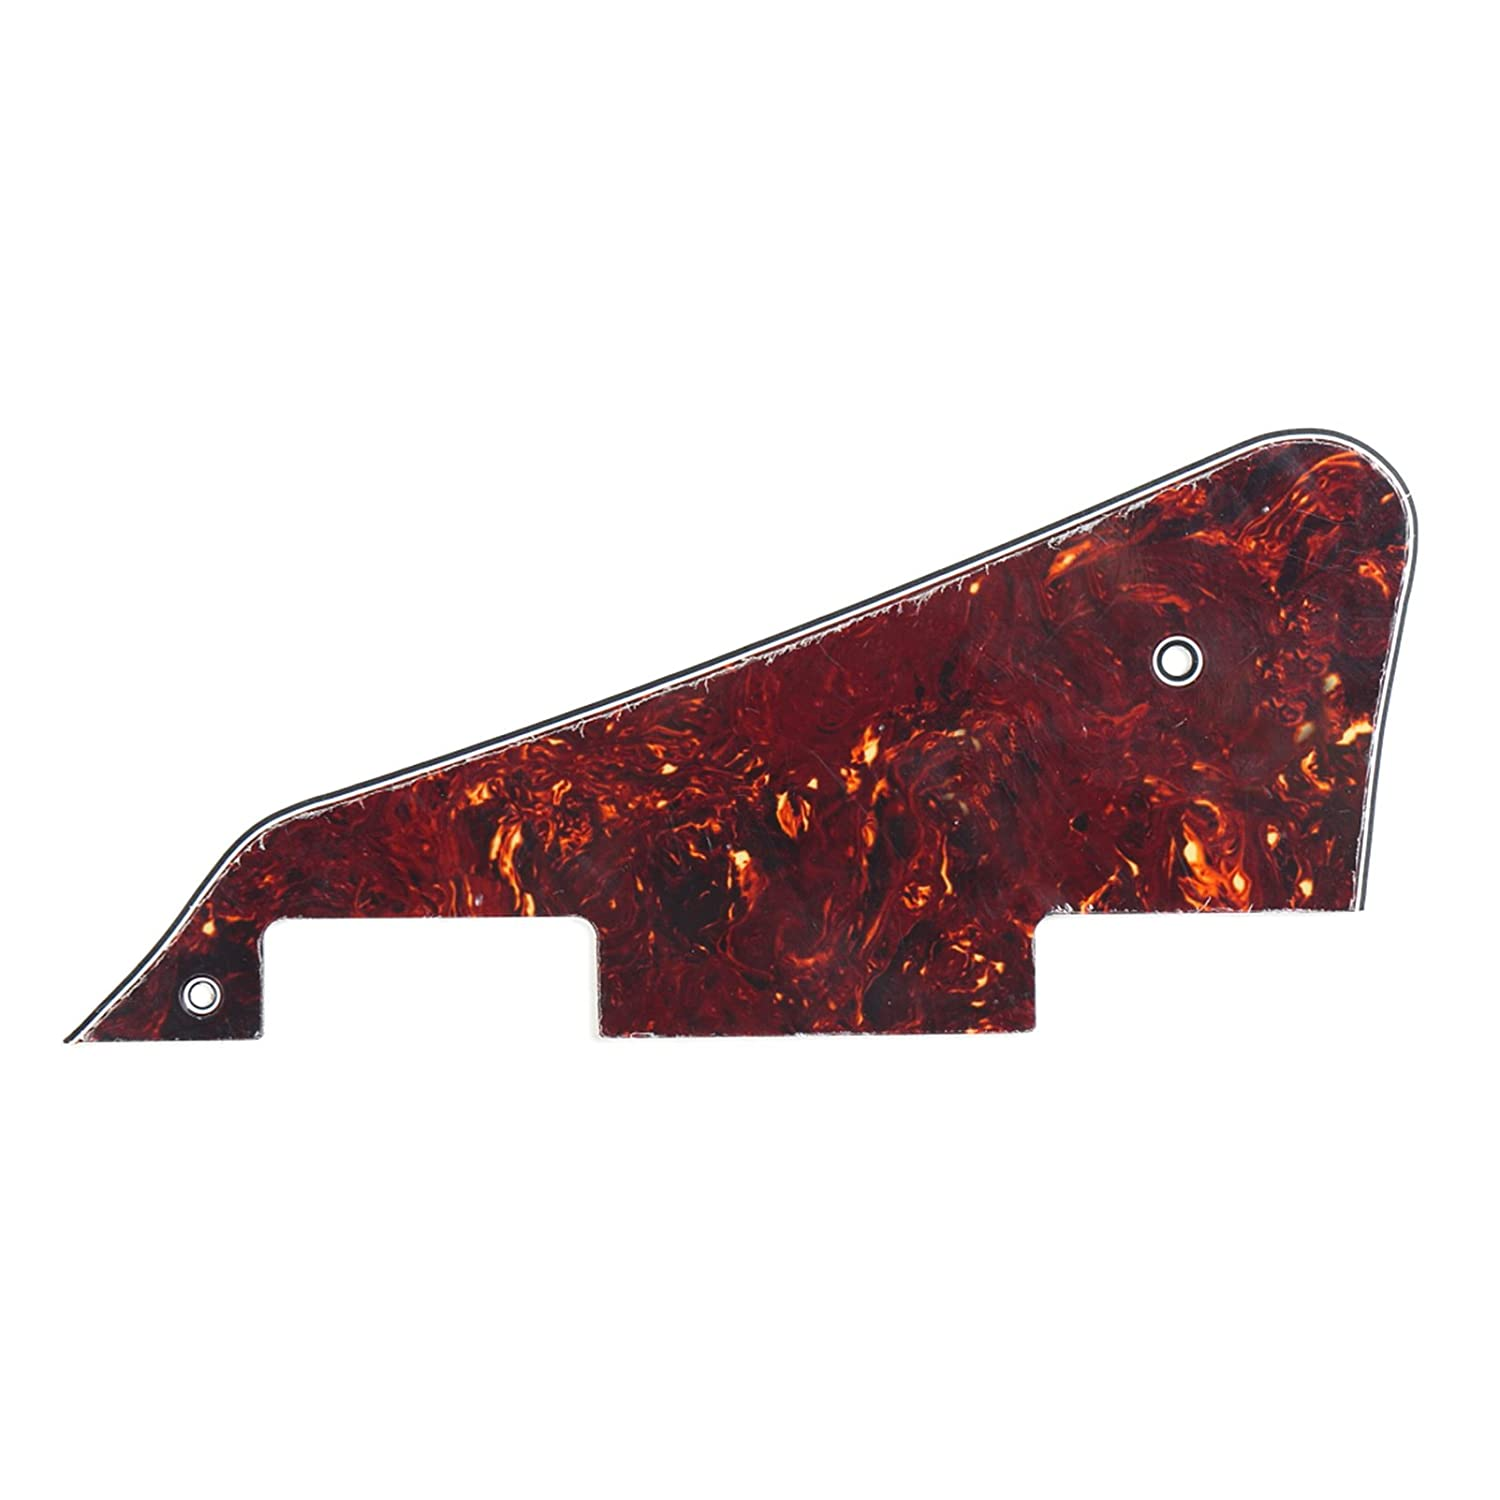 Musiclily Guitar Pickguard for Gibson Les Paul Modern Style Guitar Parts, 3ply Cream MX0069